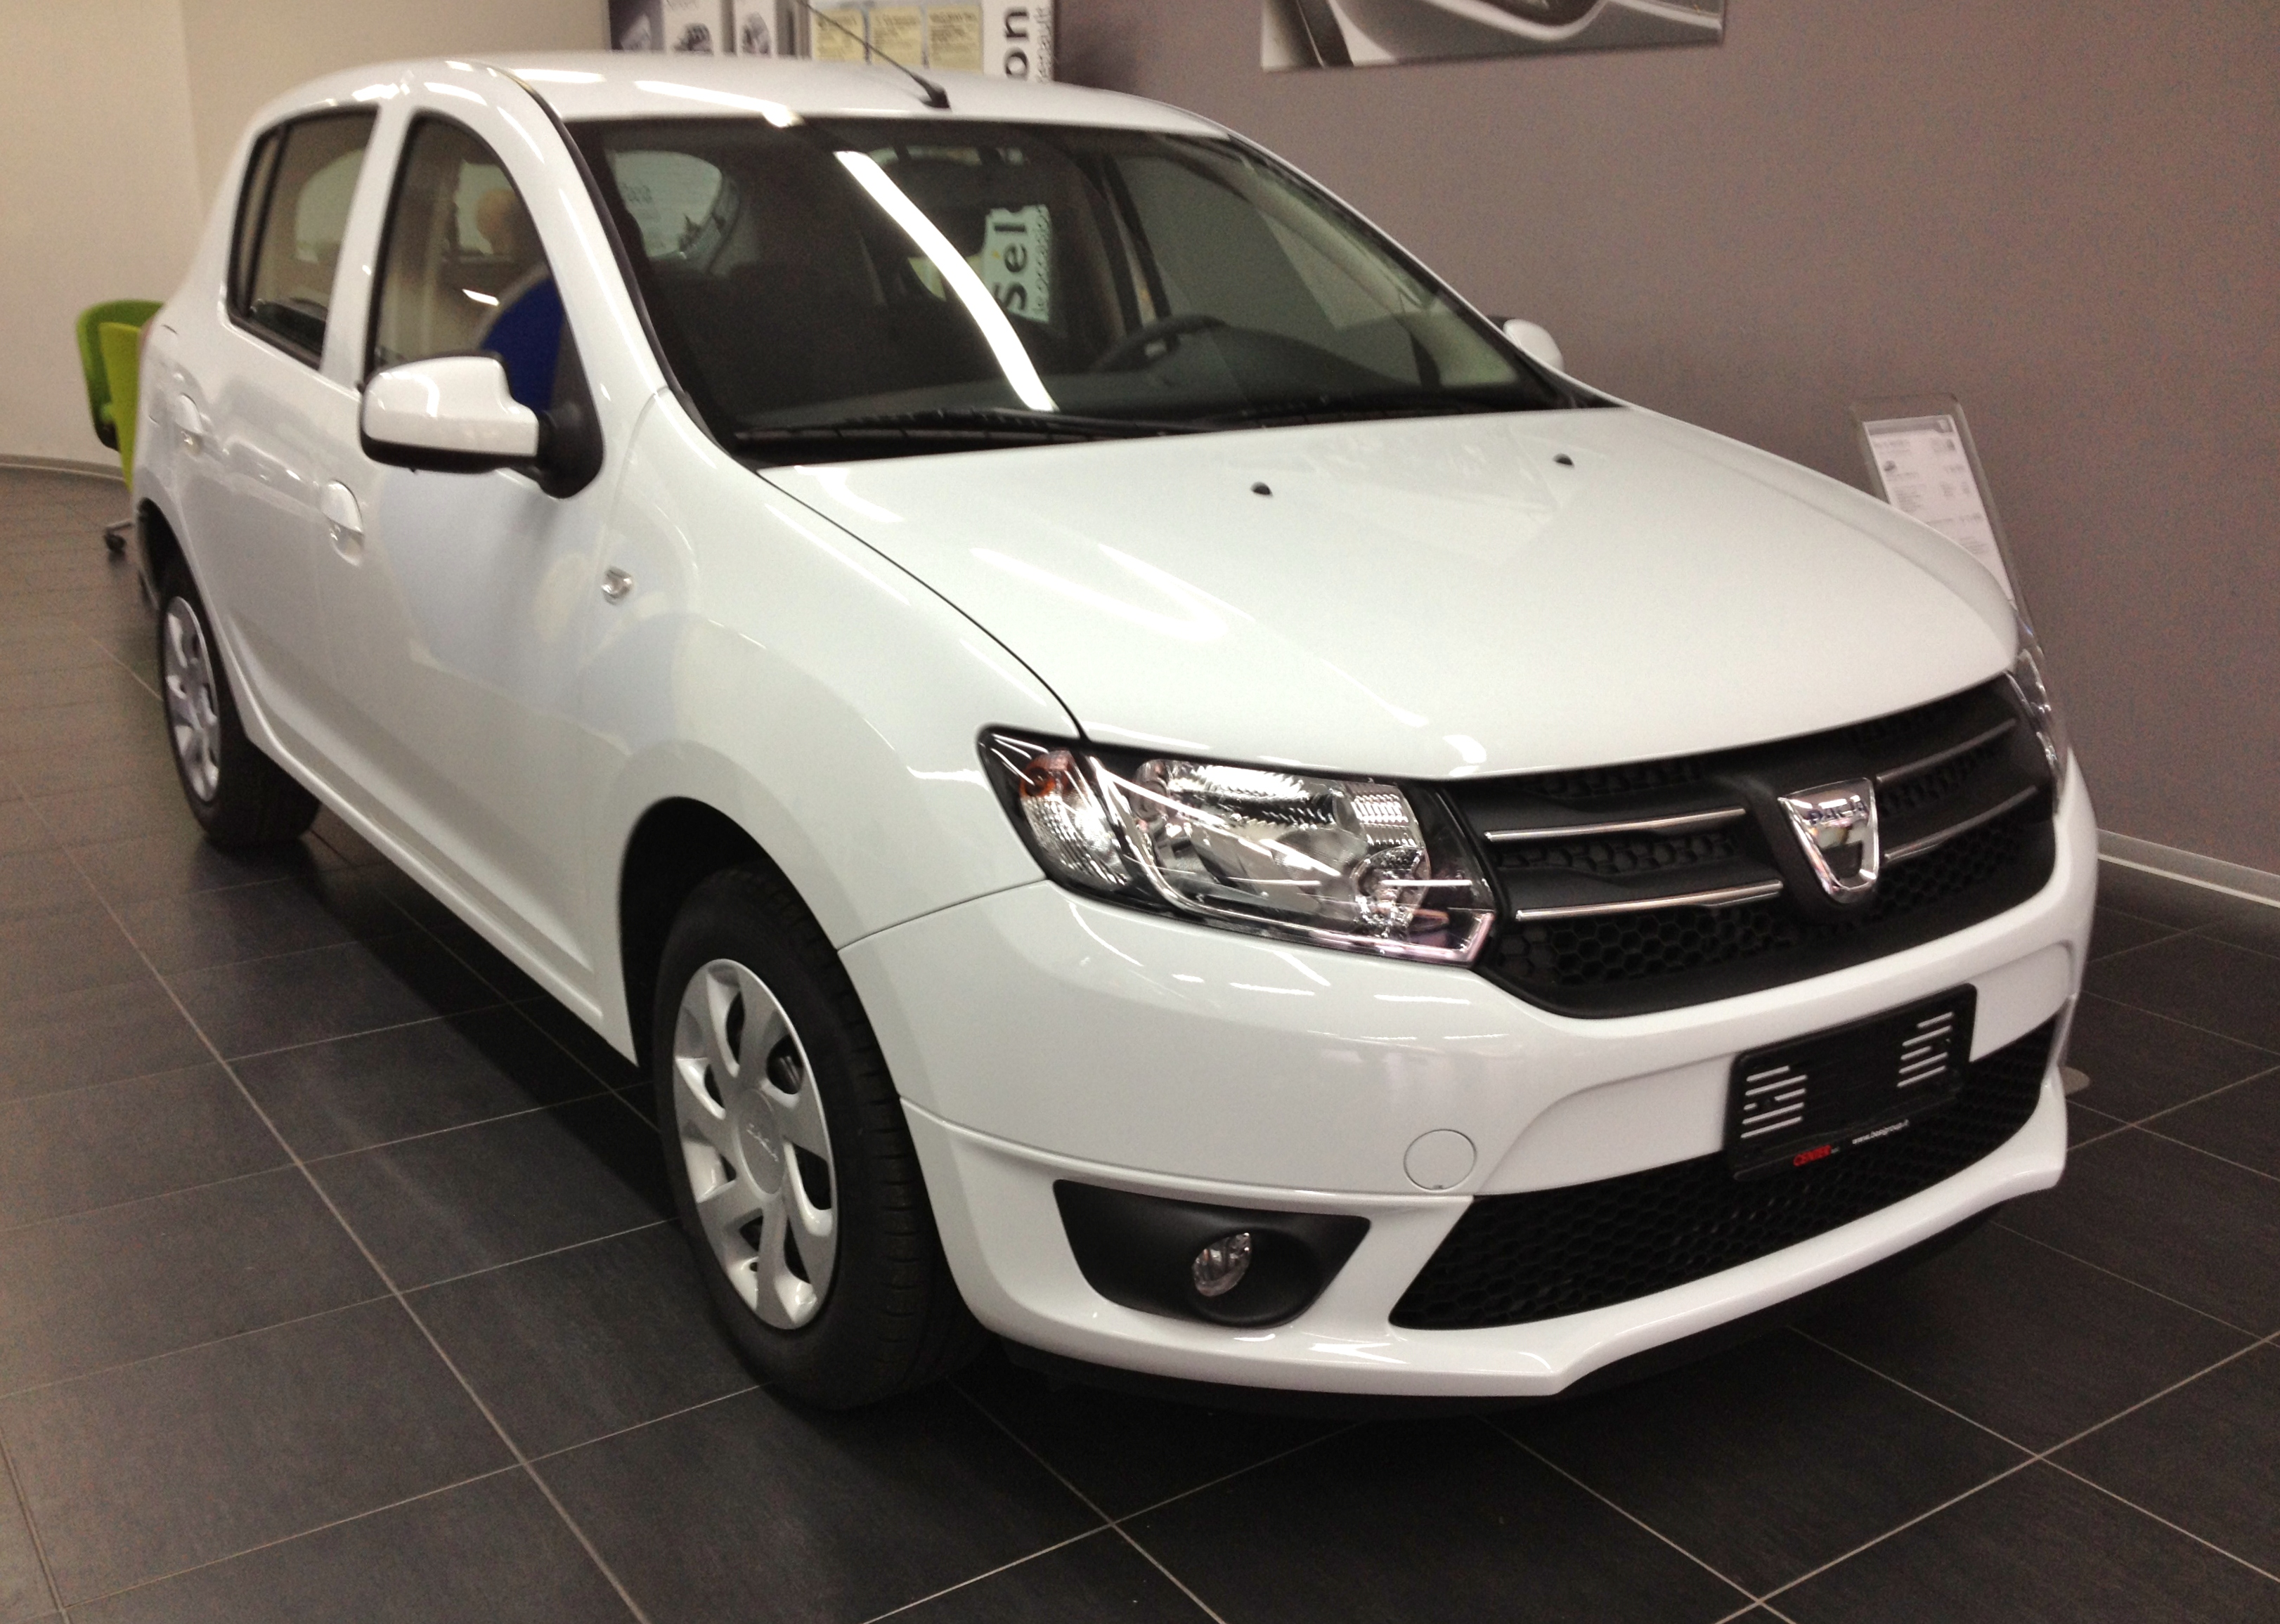 dacia sandero review and photos. Black Bedroom Furniture Sets. Home Design Ideas